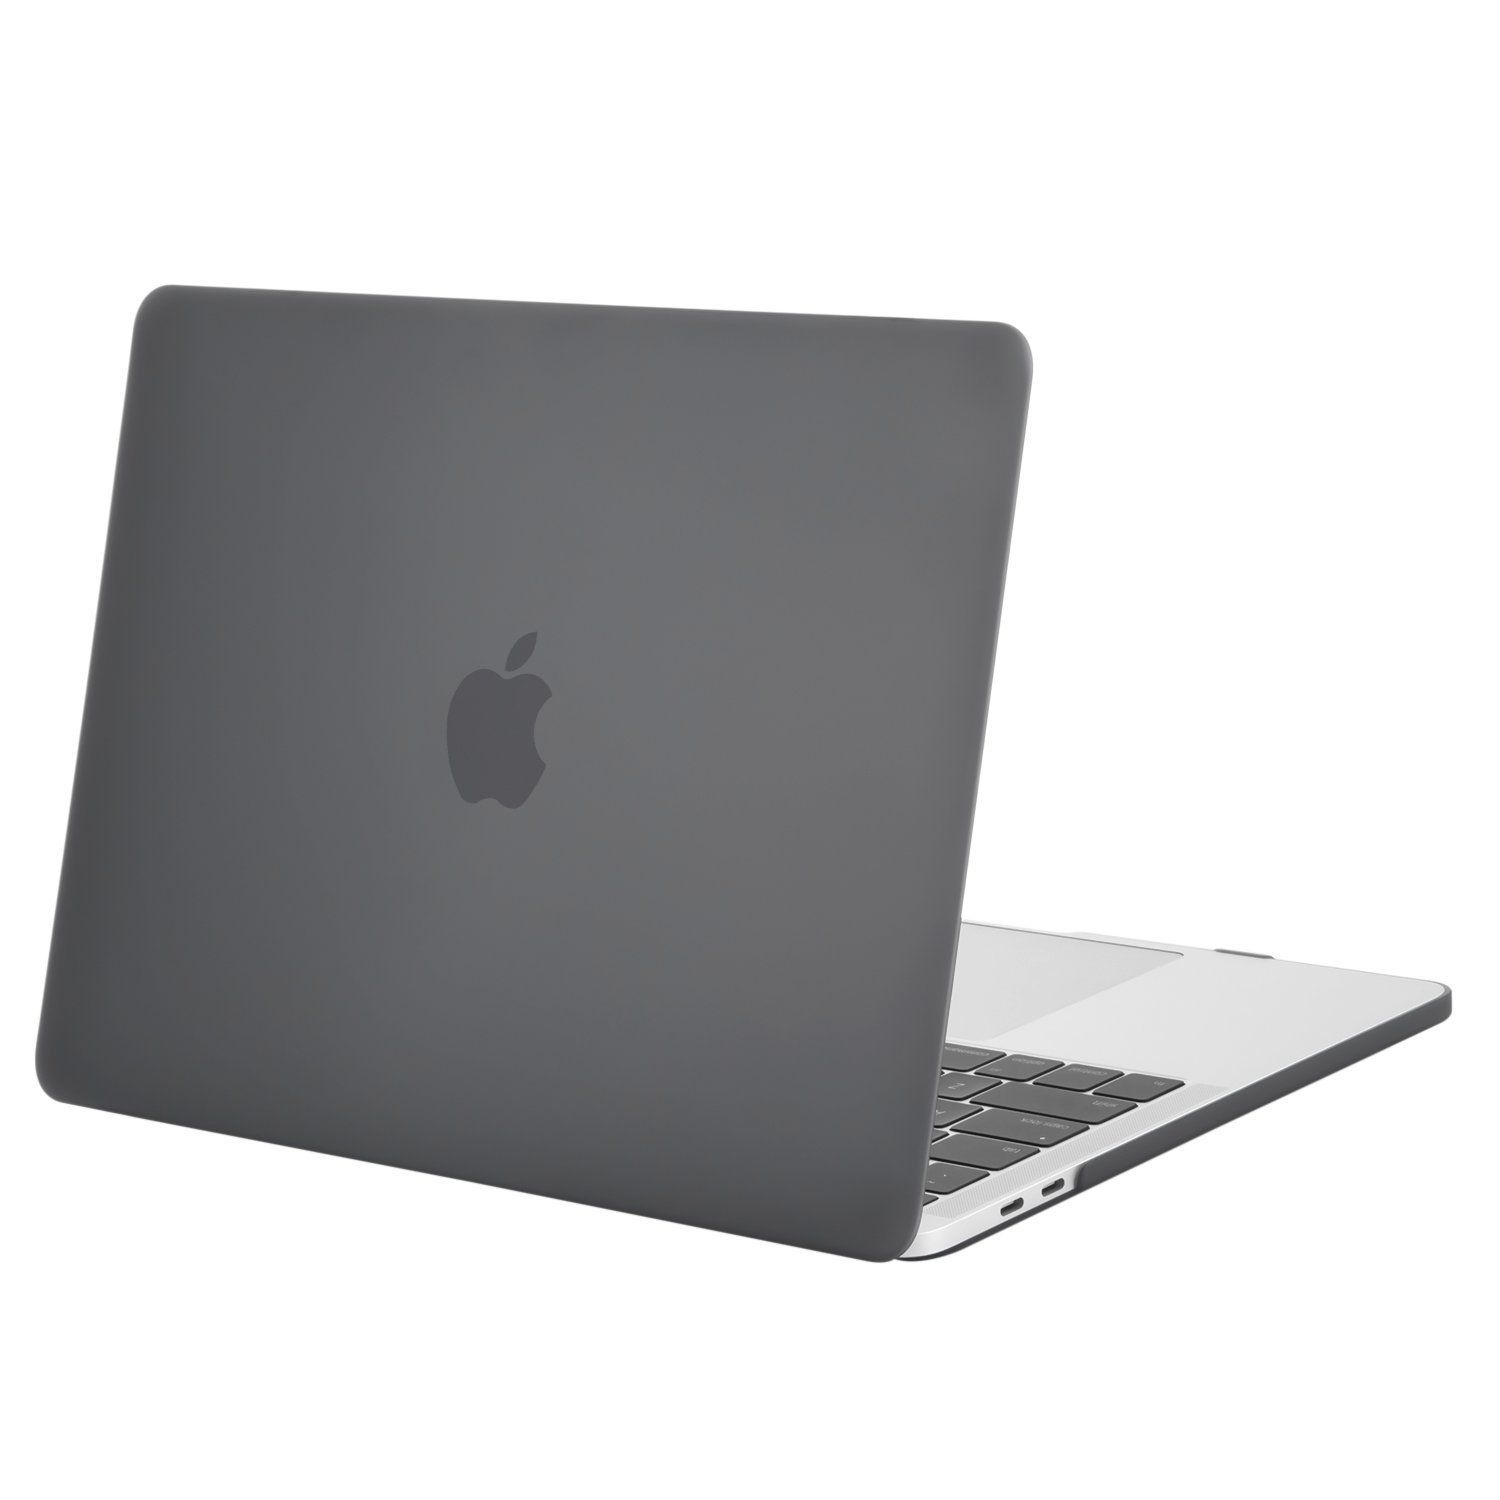 Mosiso Macbook Pro 15 Case 2019 2018 2017 2016 Release A1990 A1707 With Touch Bar Touch Id Plast Macbook Pro 15 Case Macbook Pro 15 Inch Macbook Hard Case